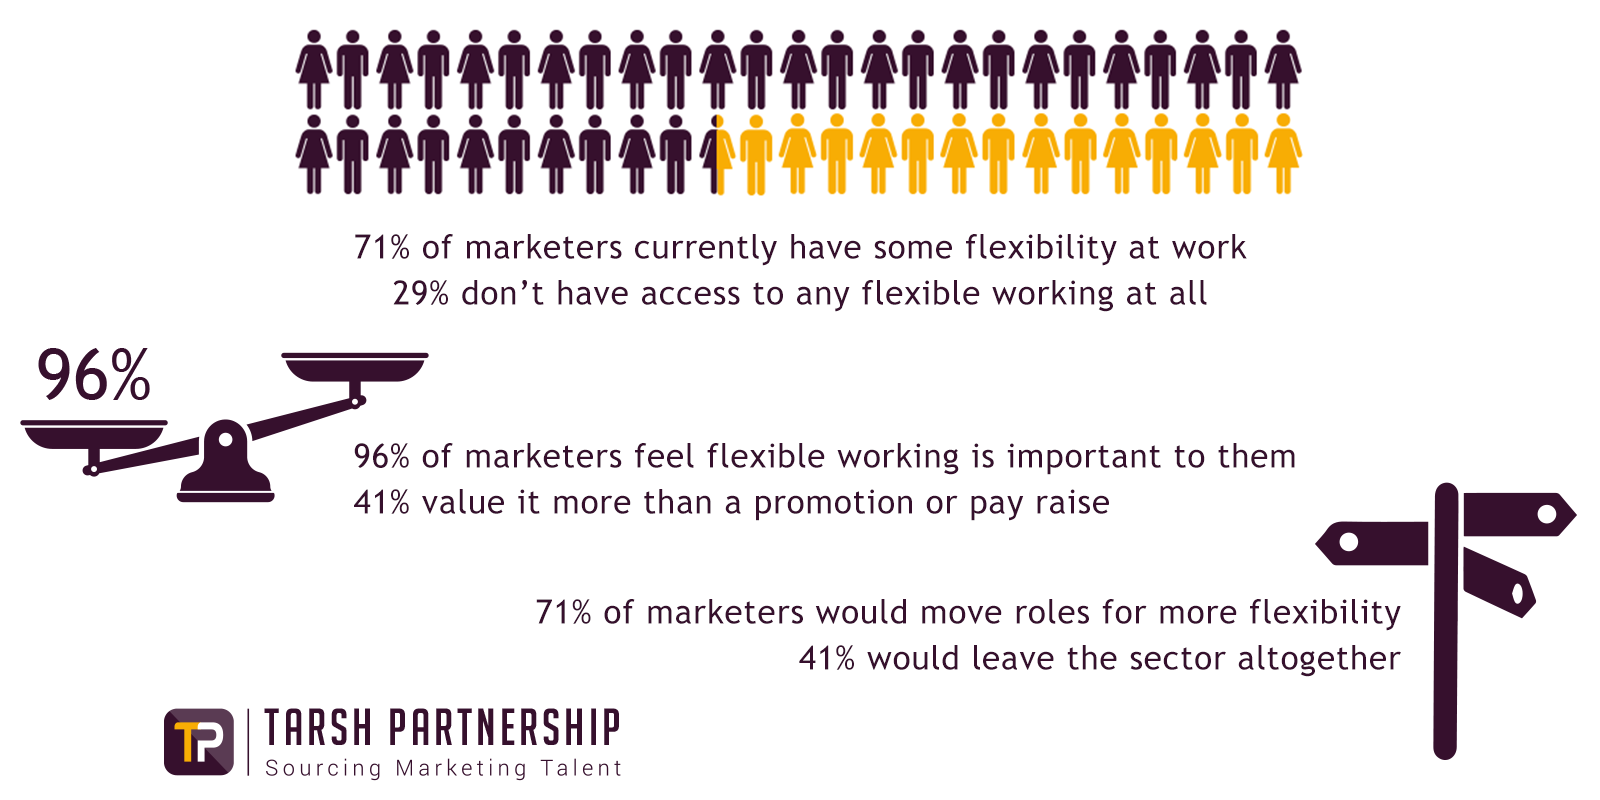 Results from the Tarsh Partnership Flexible Working Survey